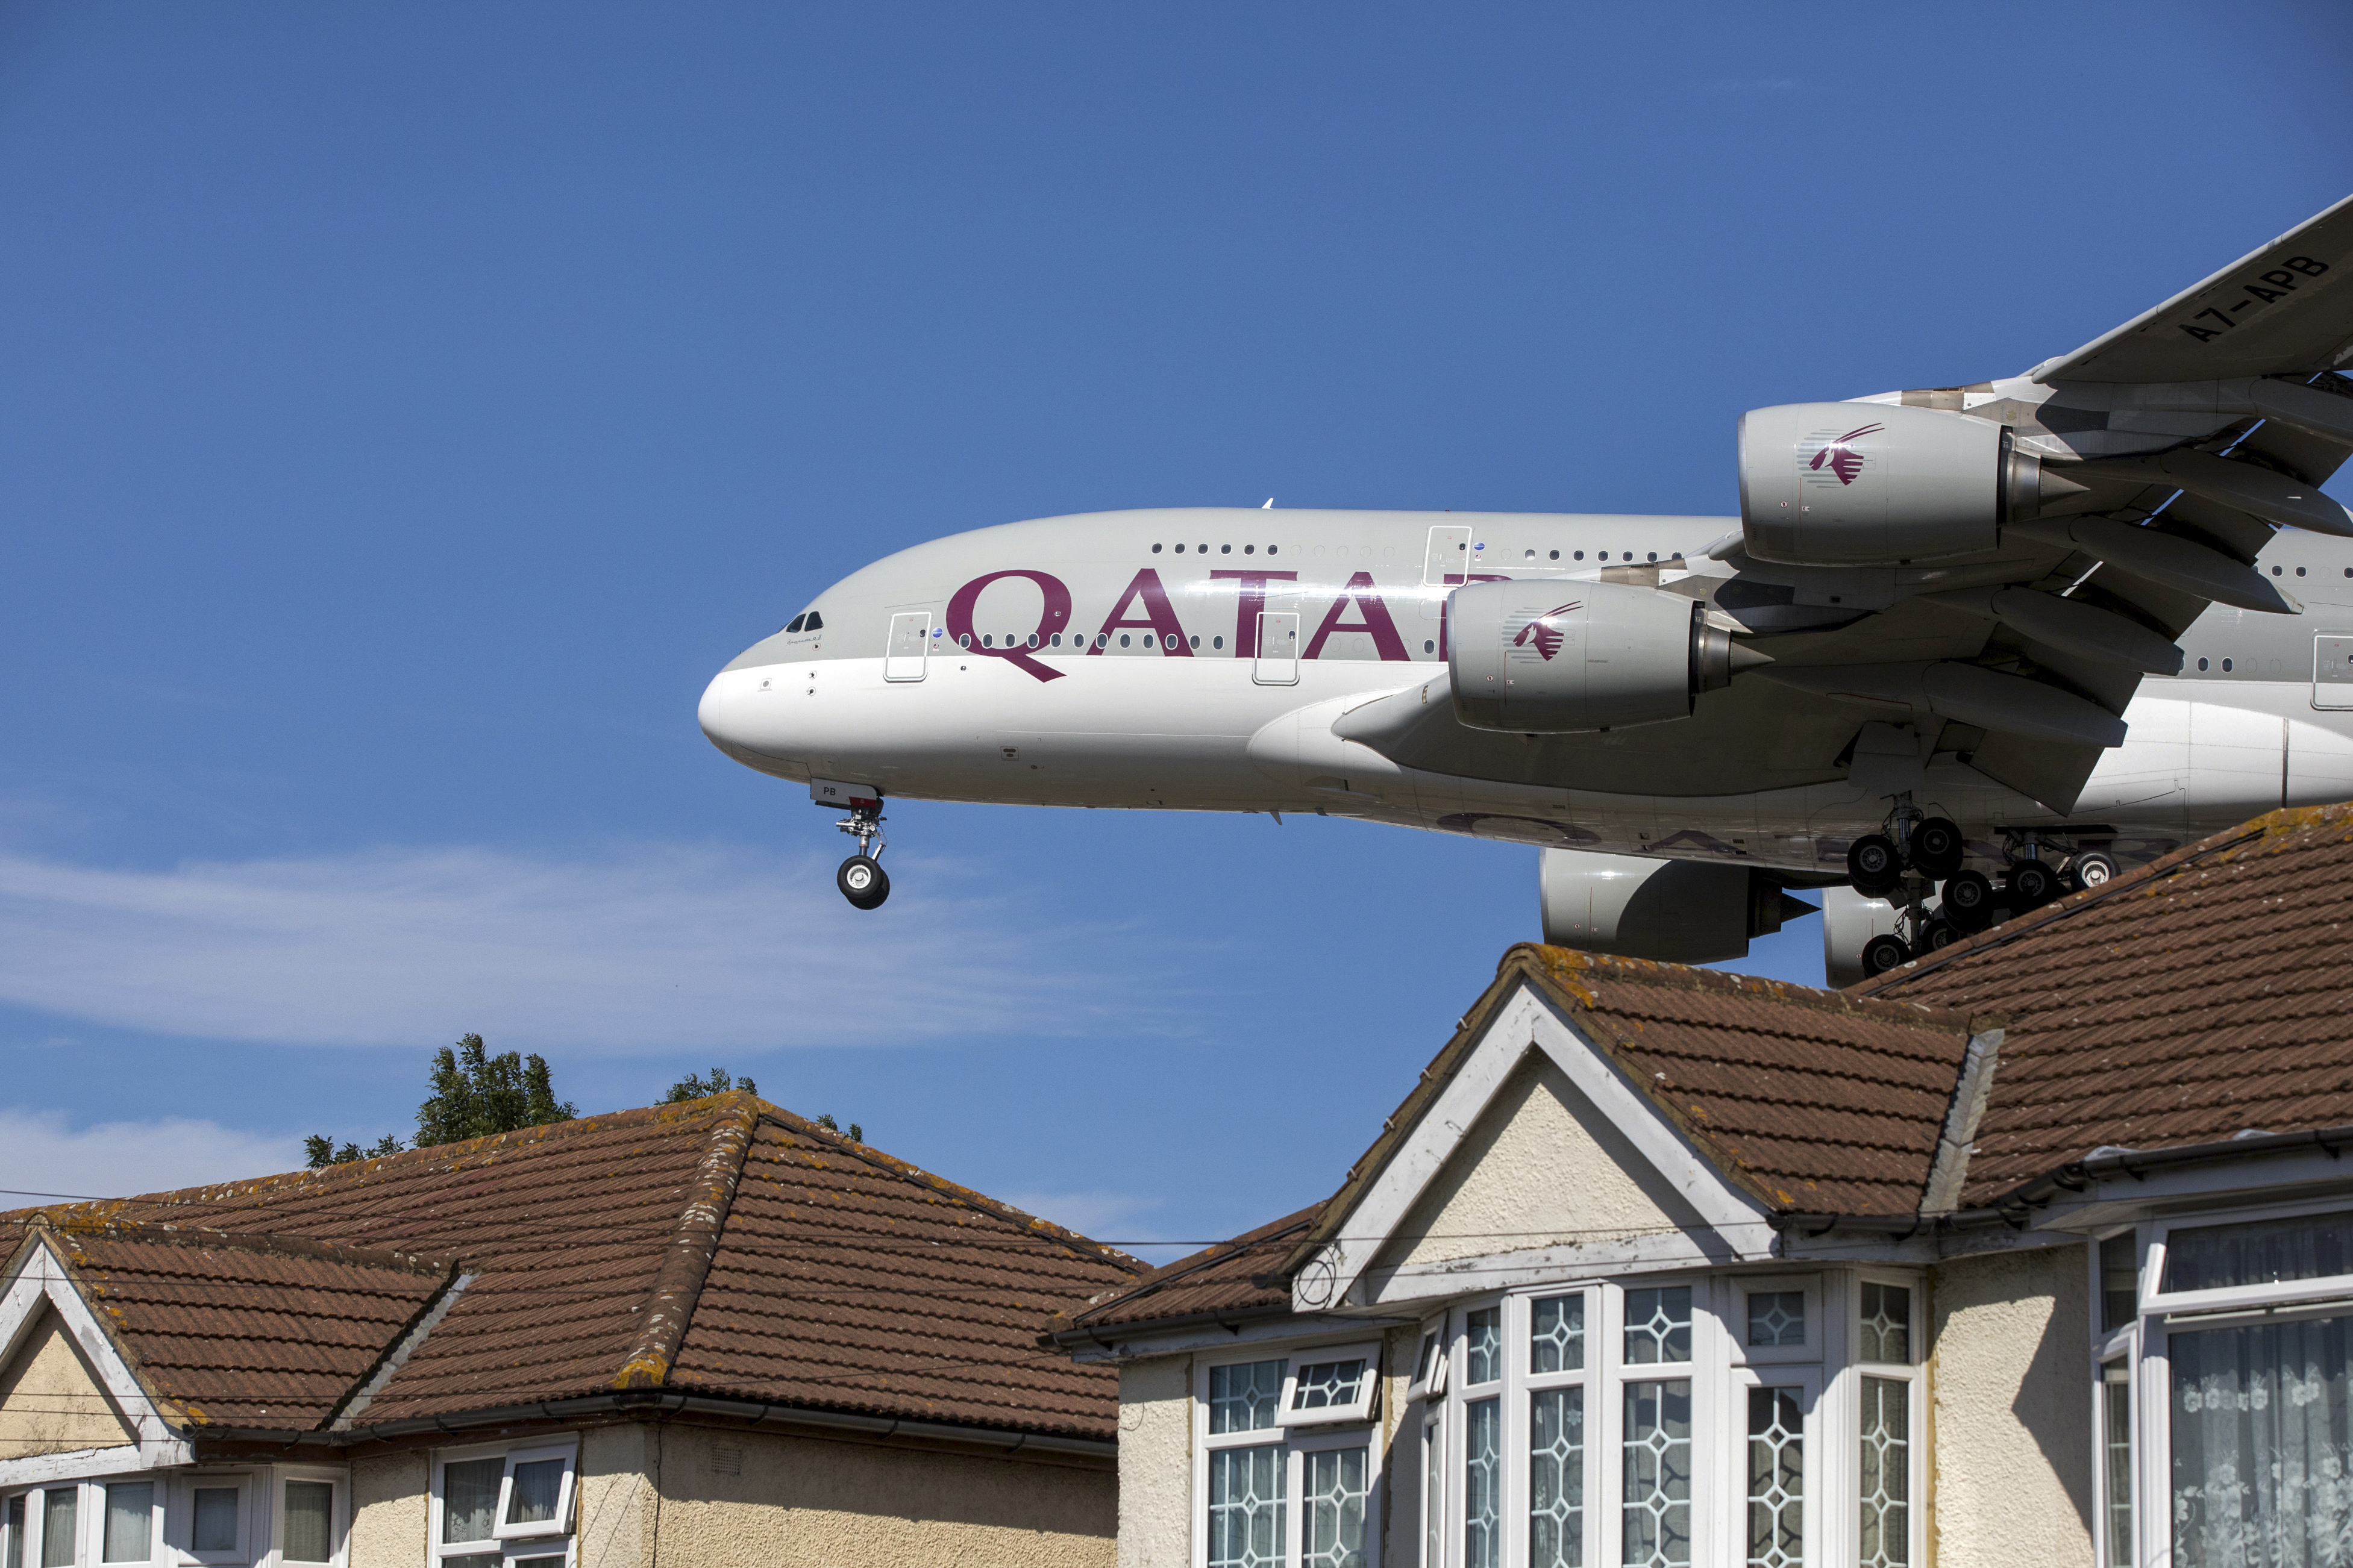 Qatar Airways Adds 10k Seats While Other Airlines Draw Down Their